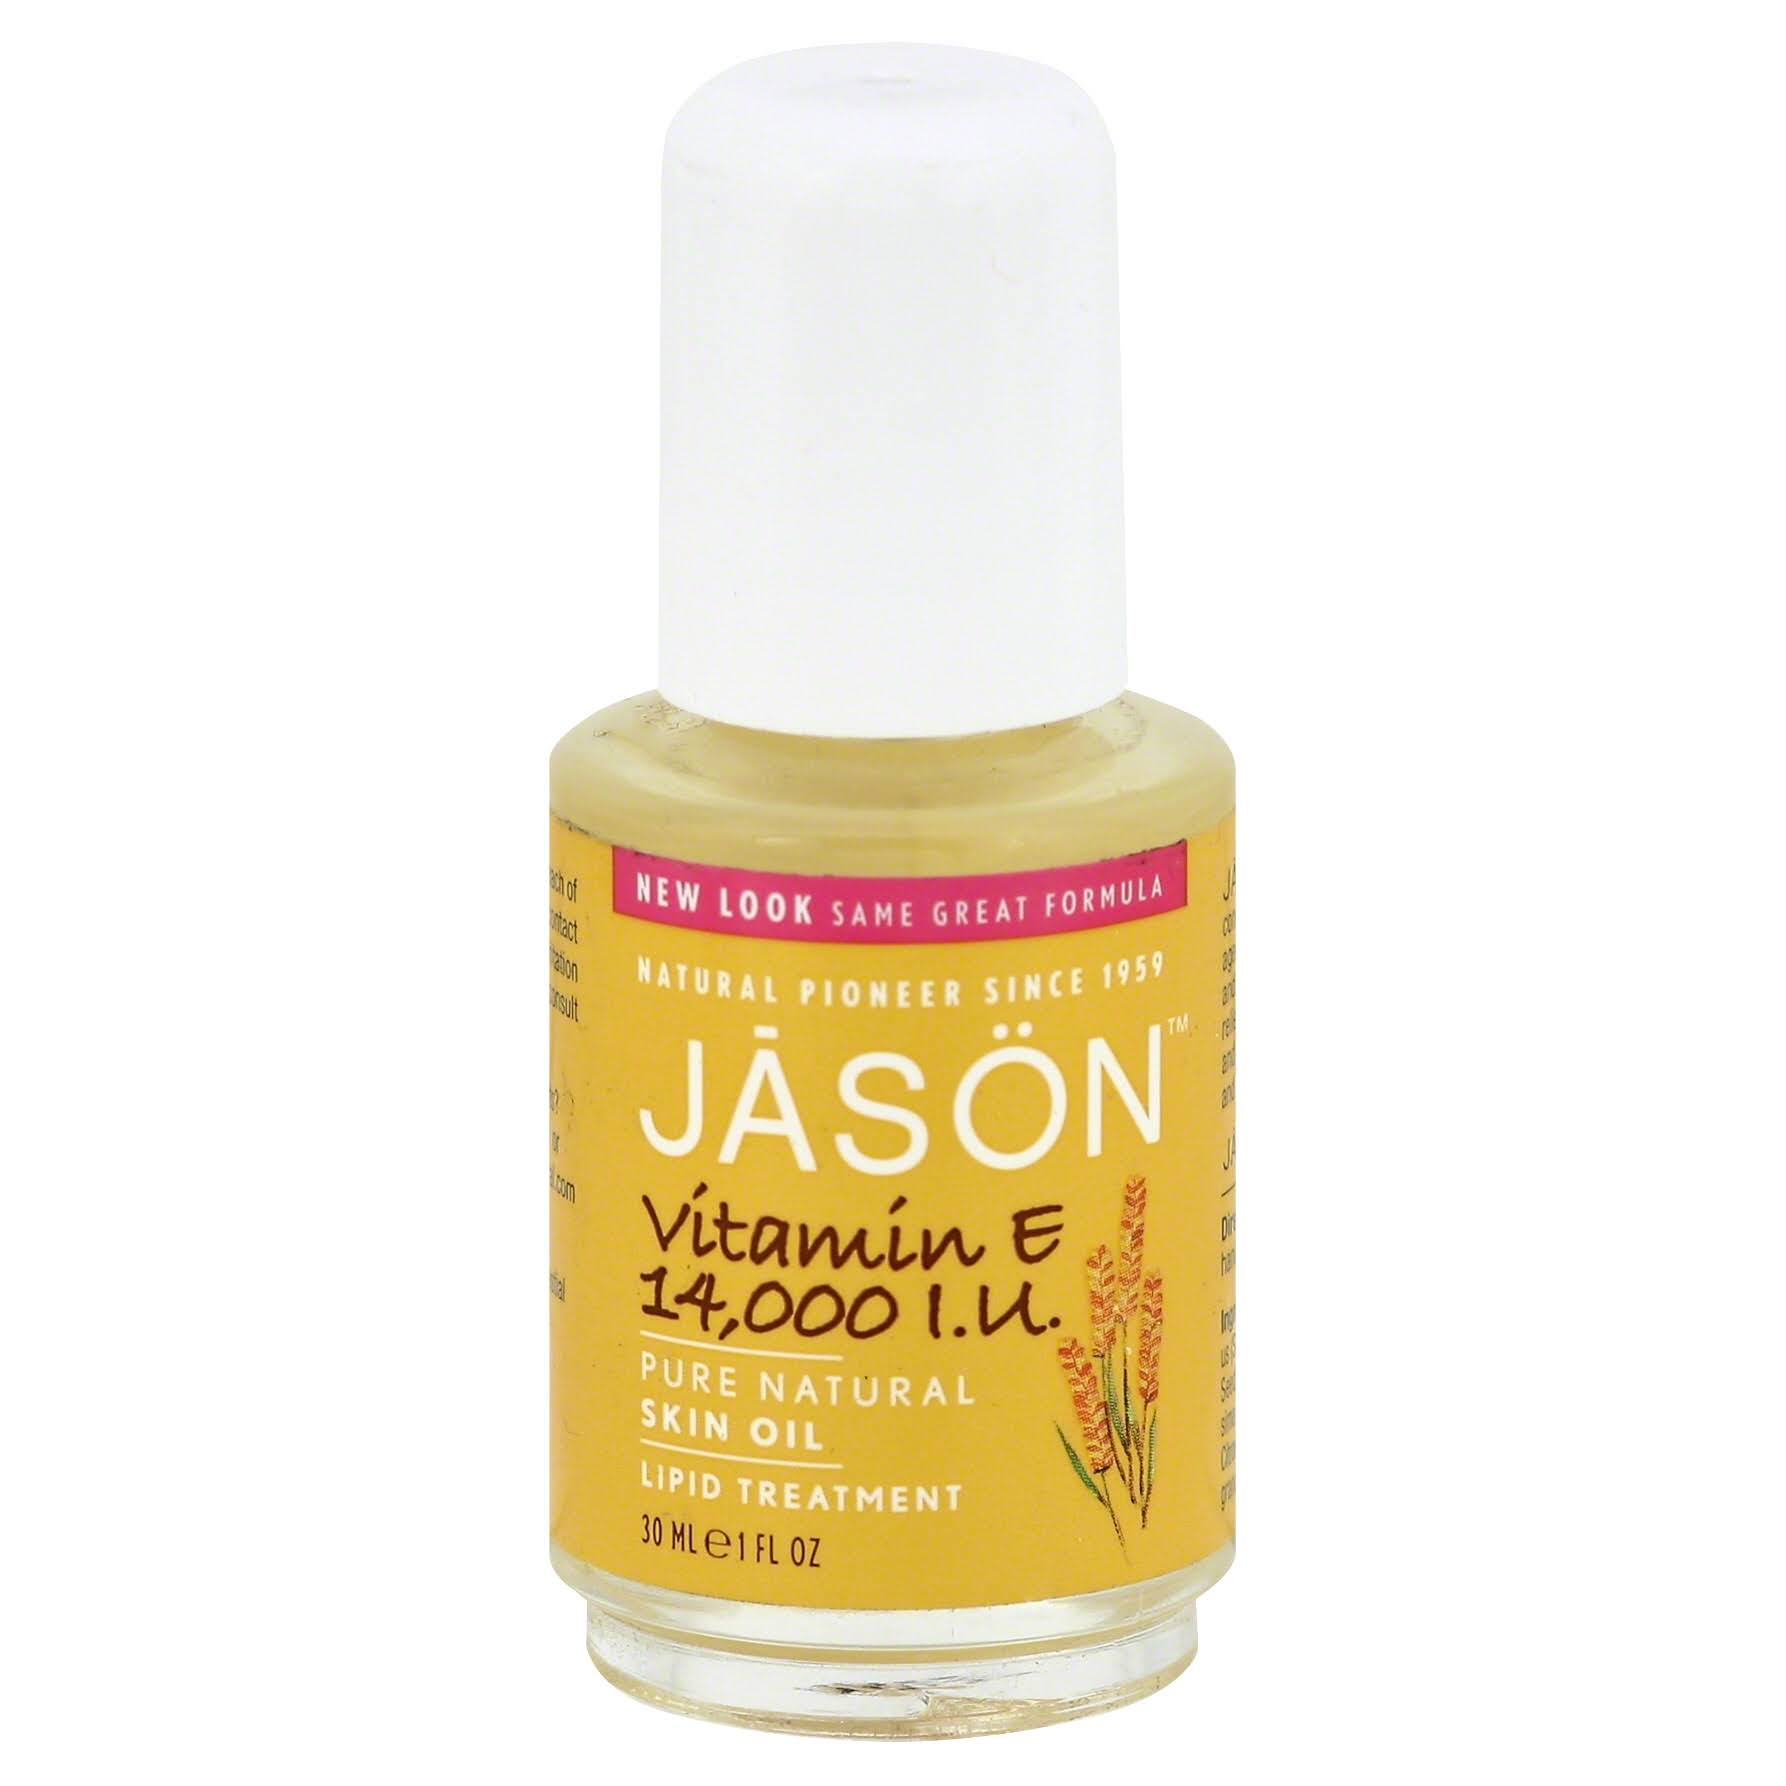 Jason Vitamin E Pure Beauty Oil - 14,000 I.U.